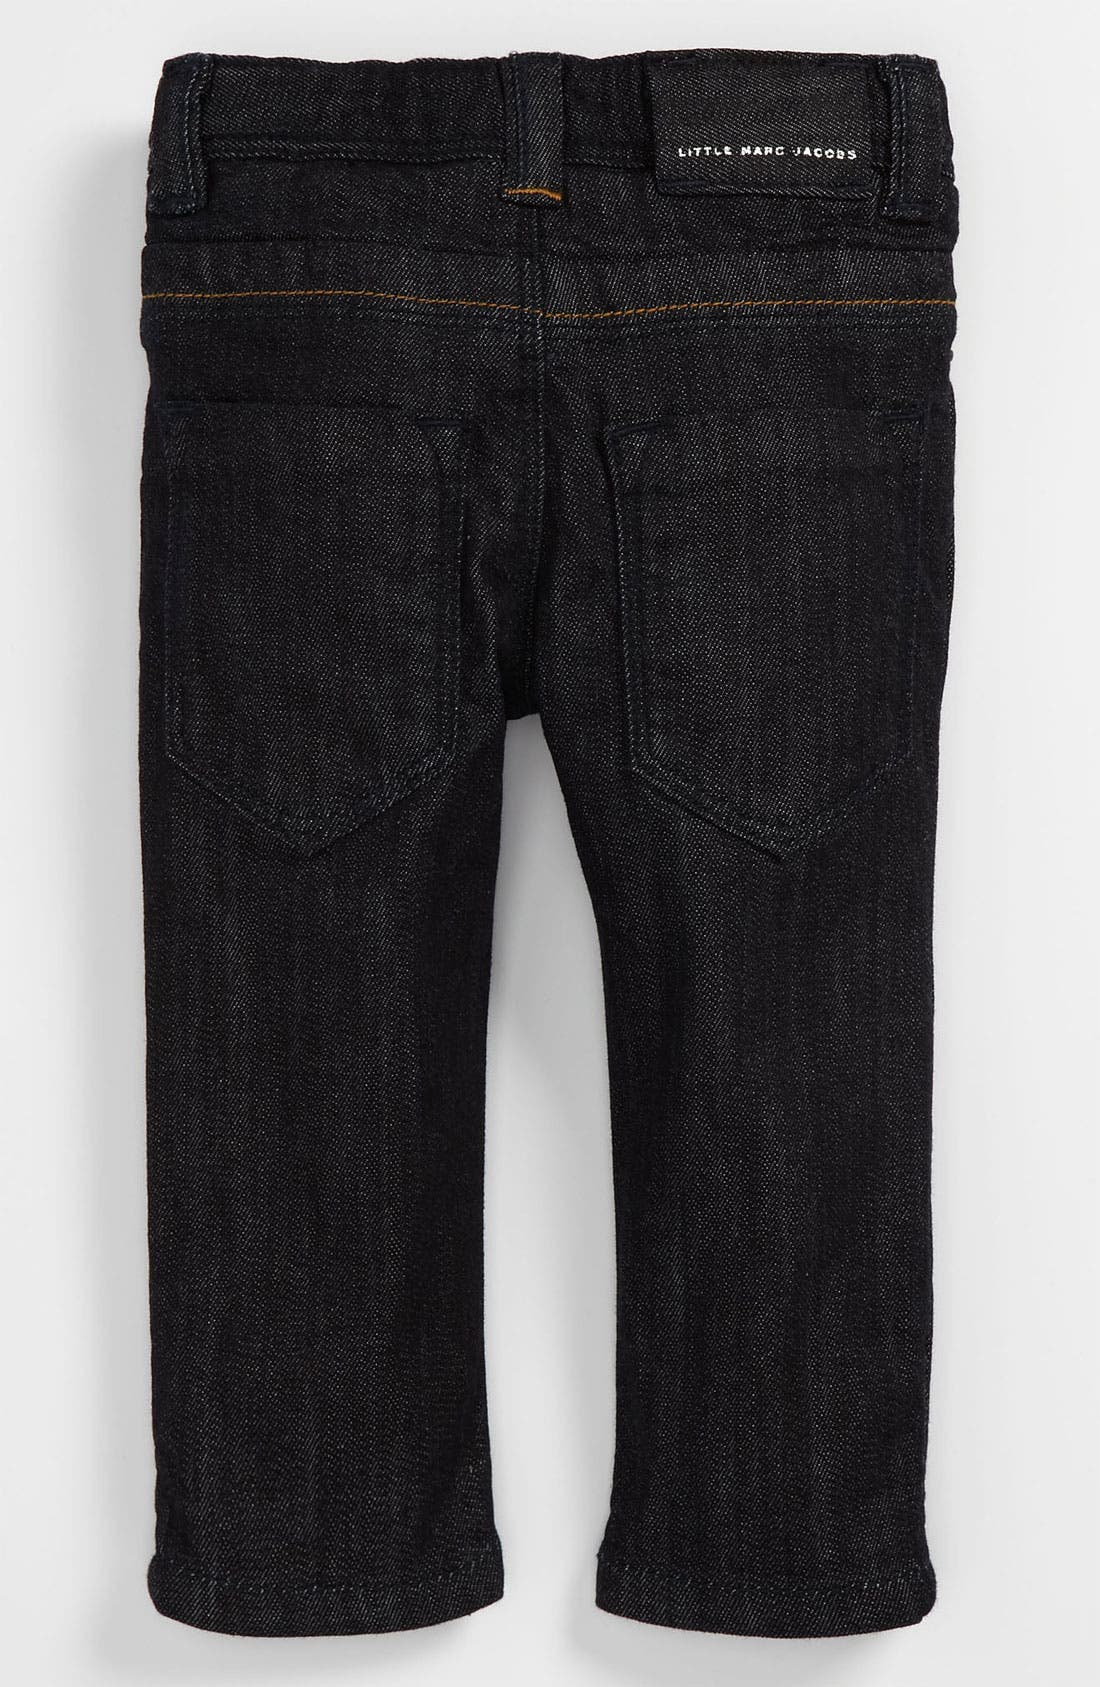 Main Image - LITTLE MARC JACOBS Denim Pants (Baby)